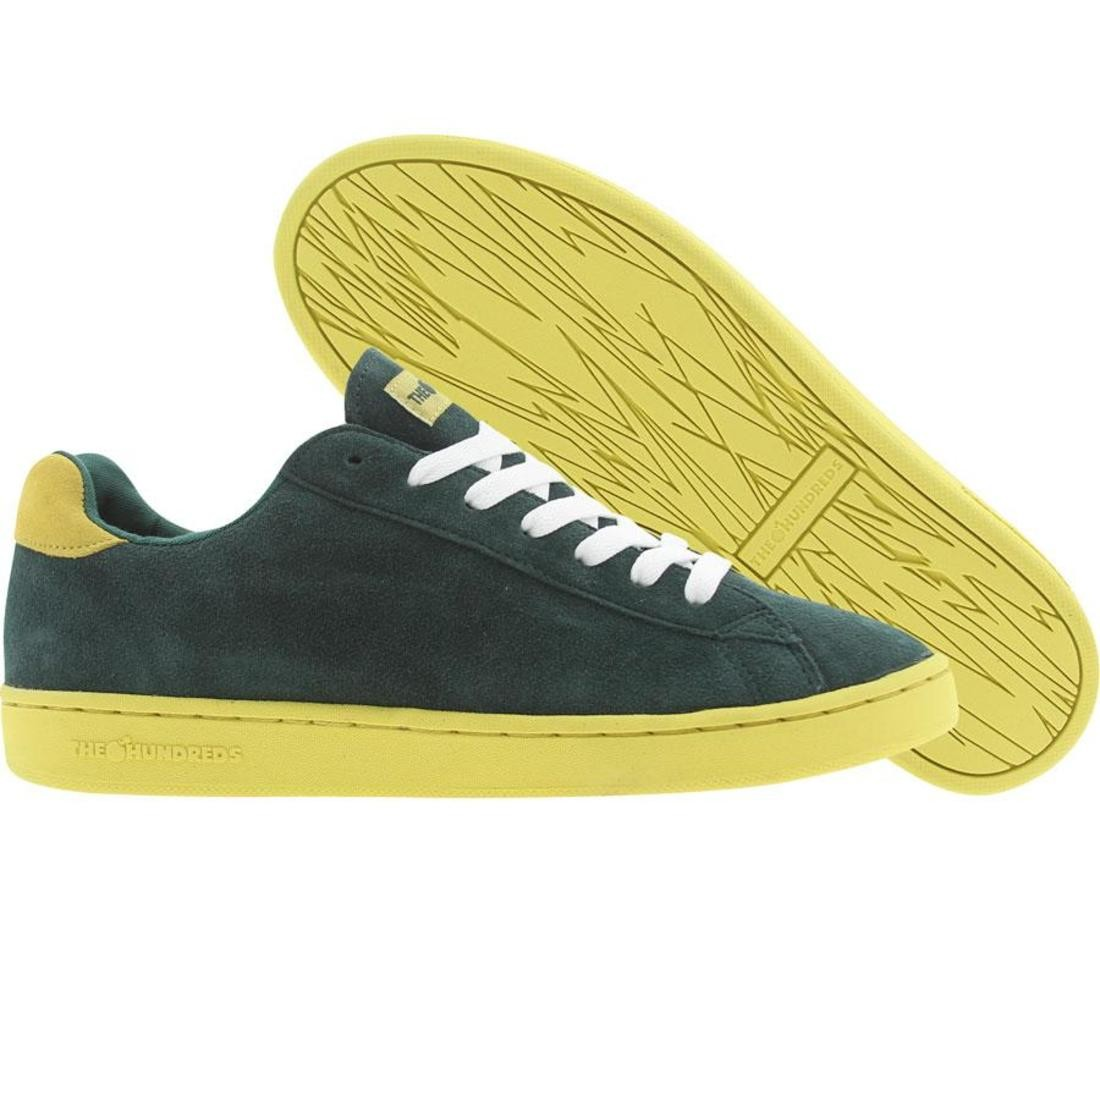 スニーカー メンズ靴 靴 【 THE HUNDREDS JACKSON LOW TOP GREEN 】